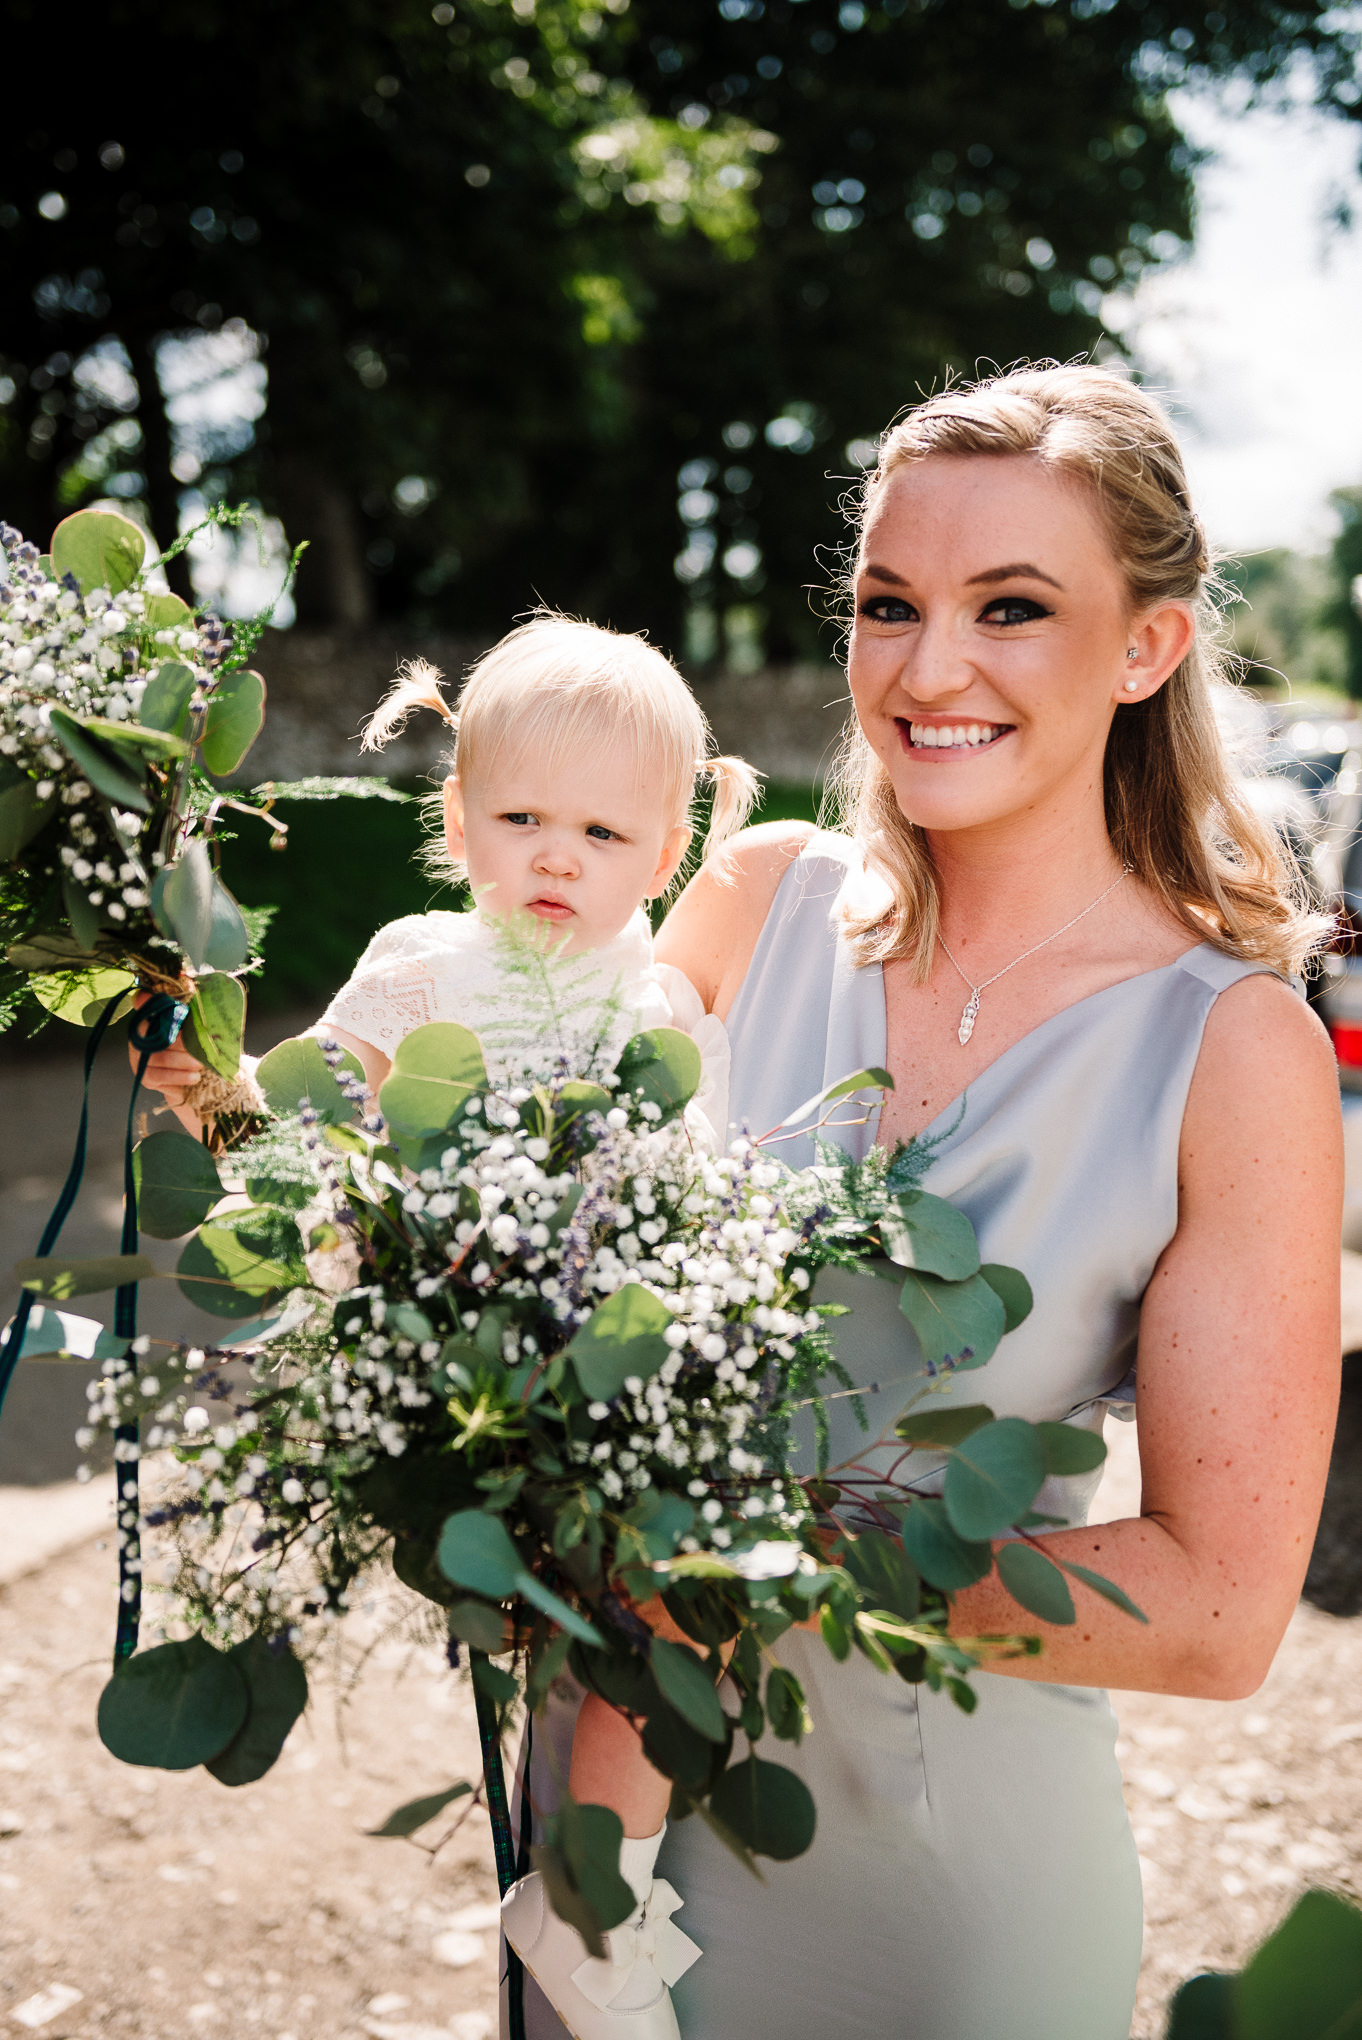 Bridesmaid holding flower girl and rustic bouquet